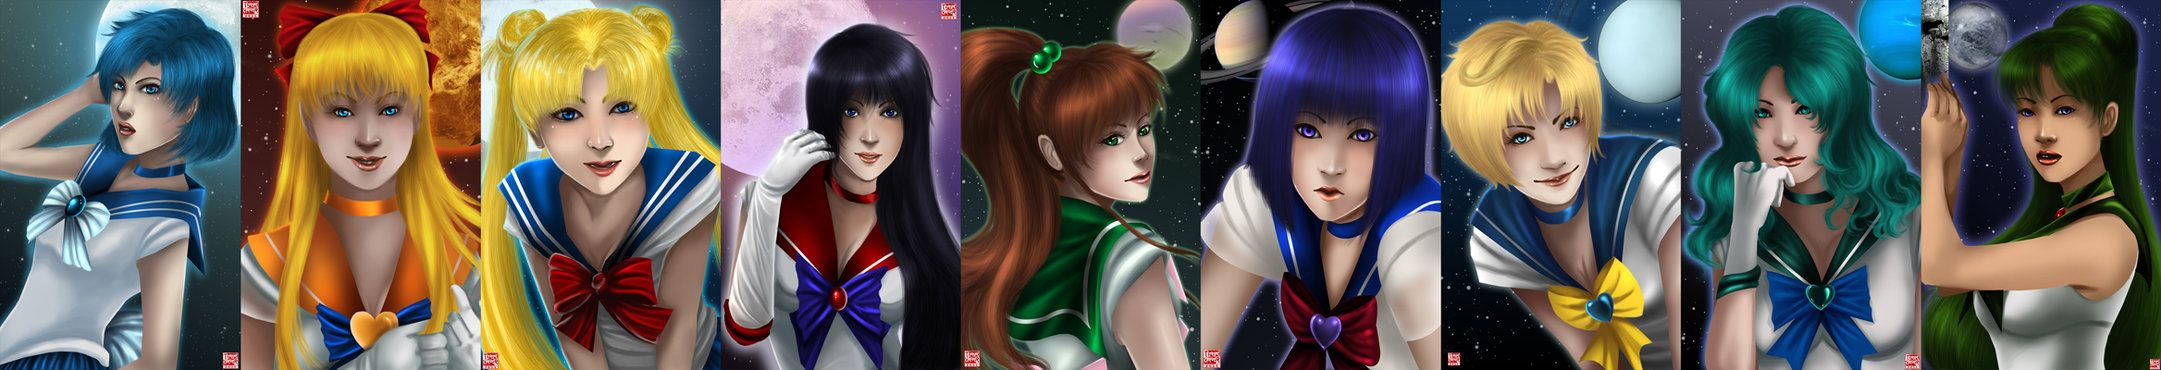 Sailor Senshi by TyrineCarver on DeviantArt